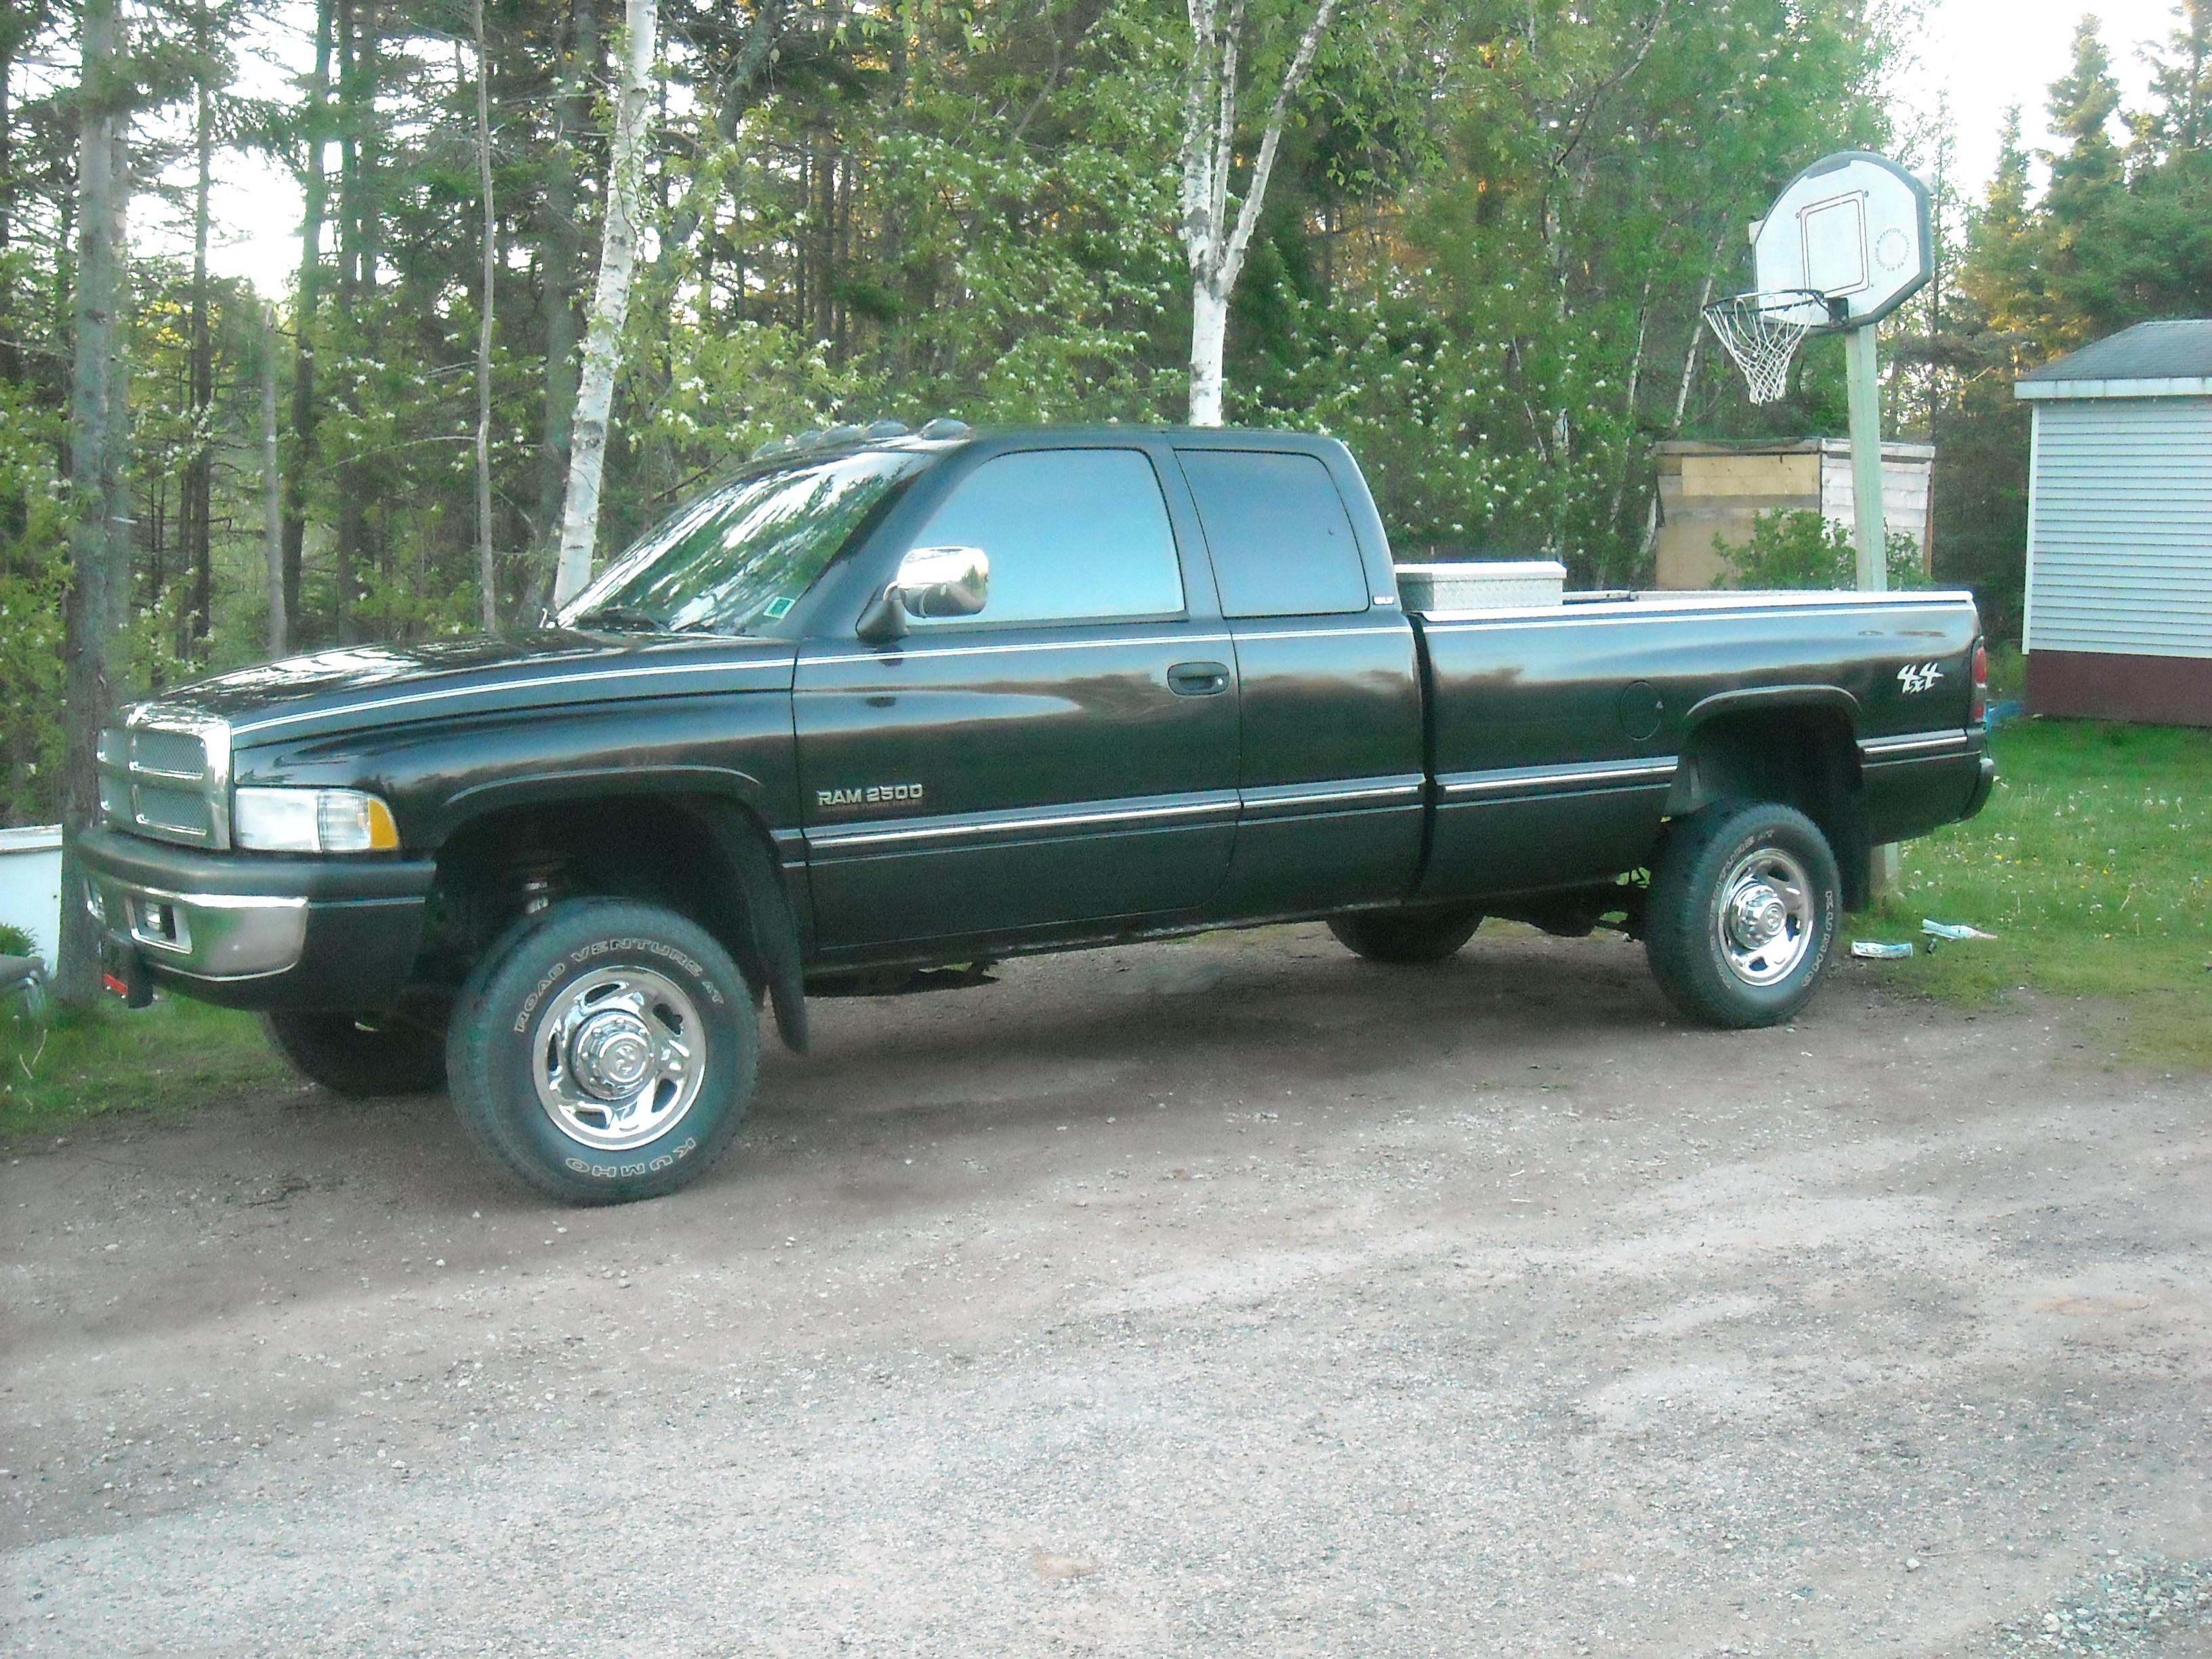 phildodge 1997 dodge ram 2500 crew cab specs photos modification info at cardomain. Black Bedroom Furniture Sets. Home Design Ideas